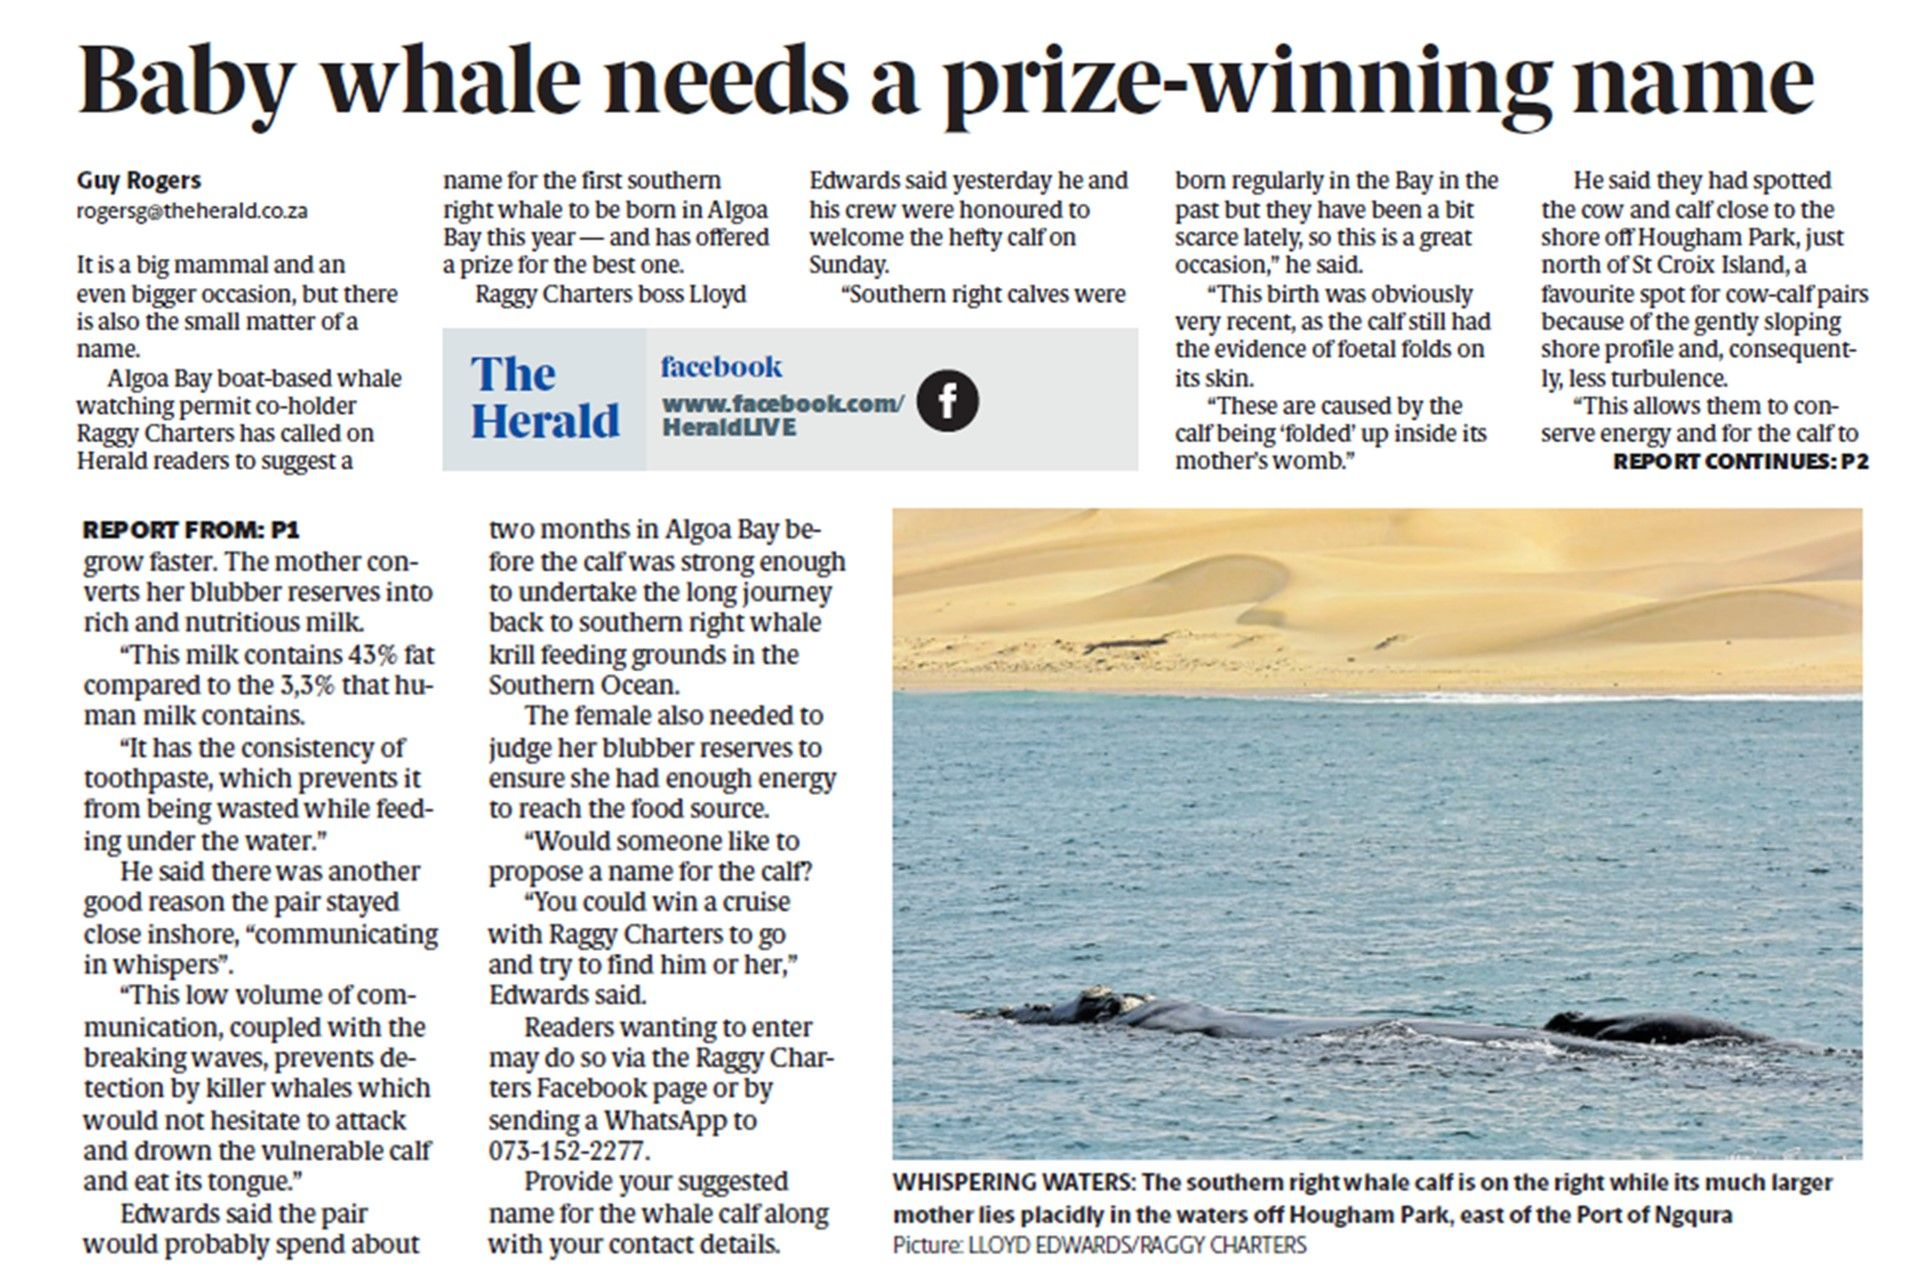 the_herald_27july2021_baby_whale_needs_a_prize_winning_name.jpg